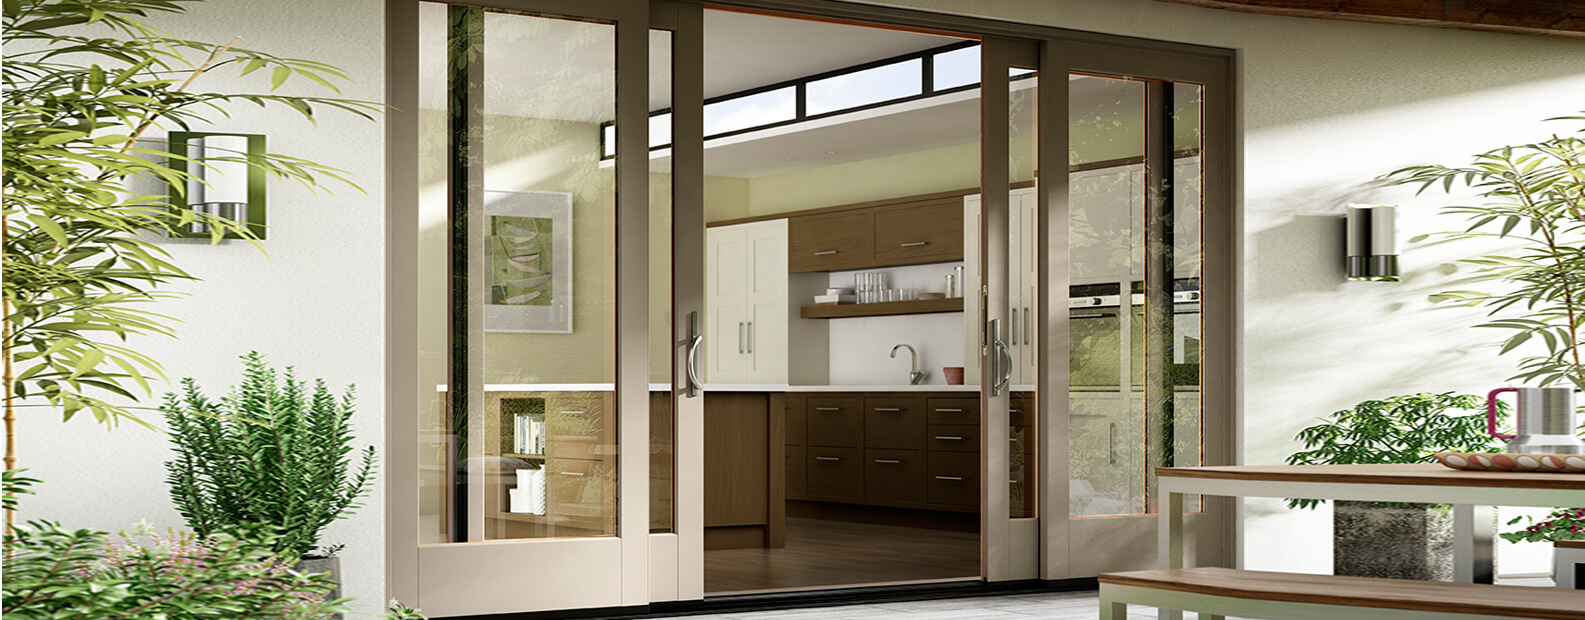 Contemporary Sliding Door Design